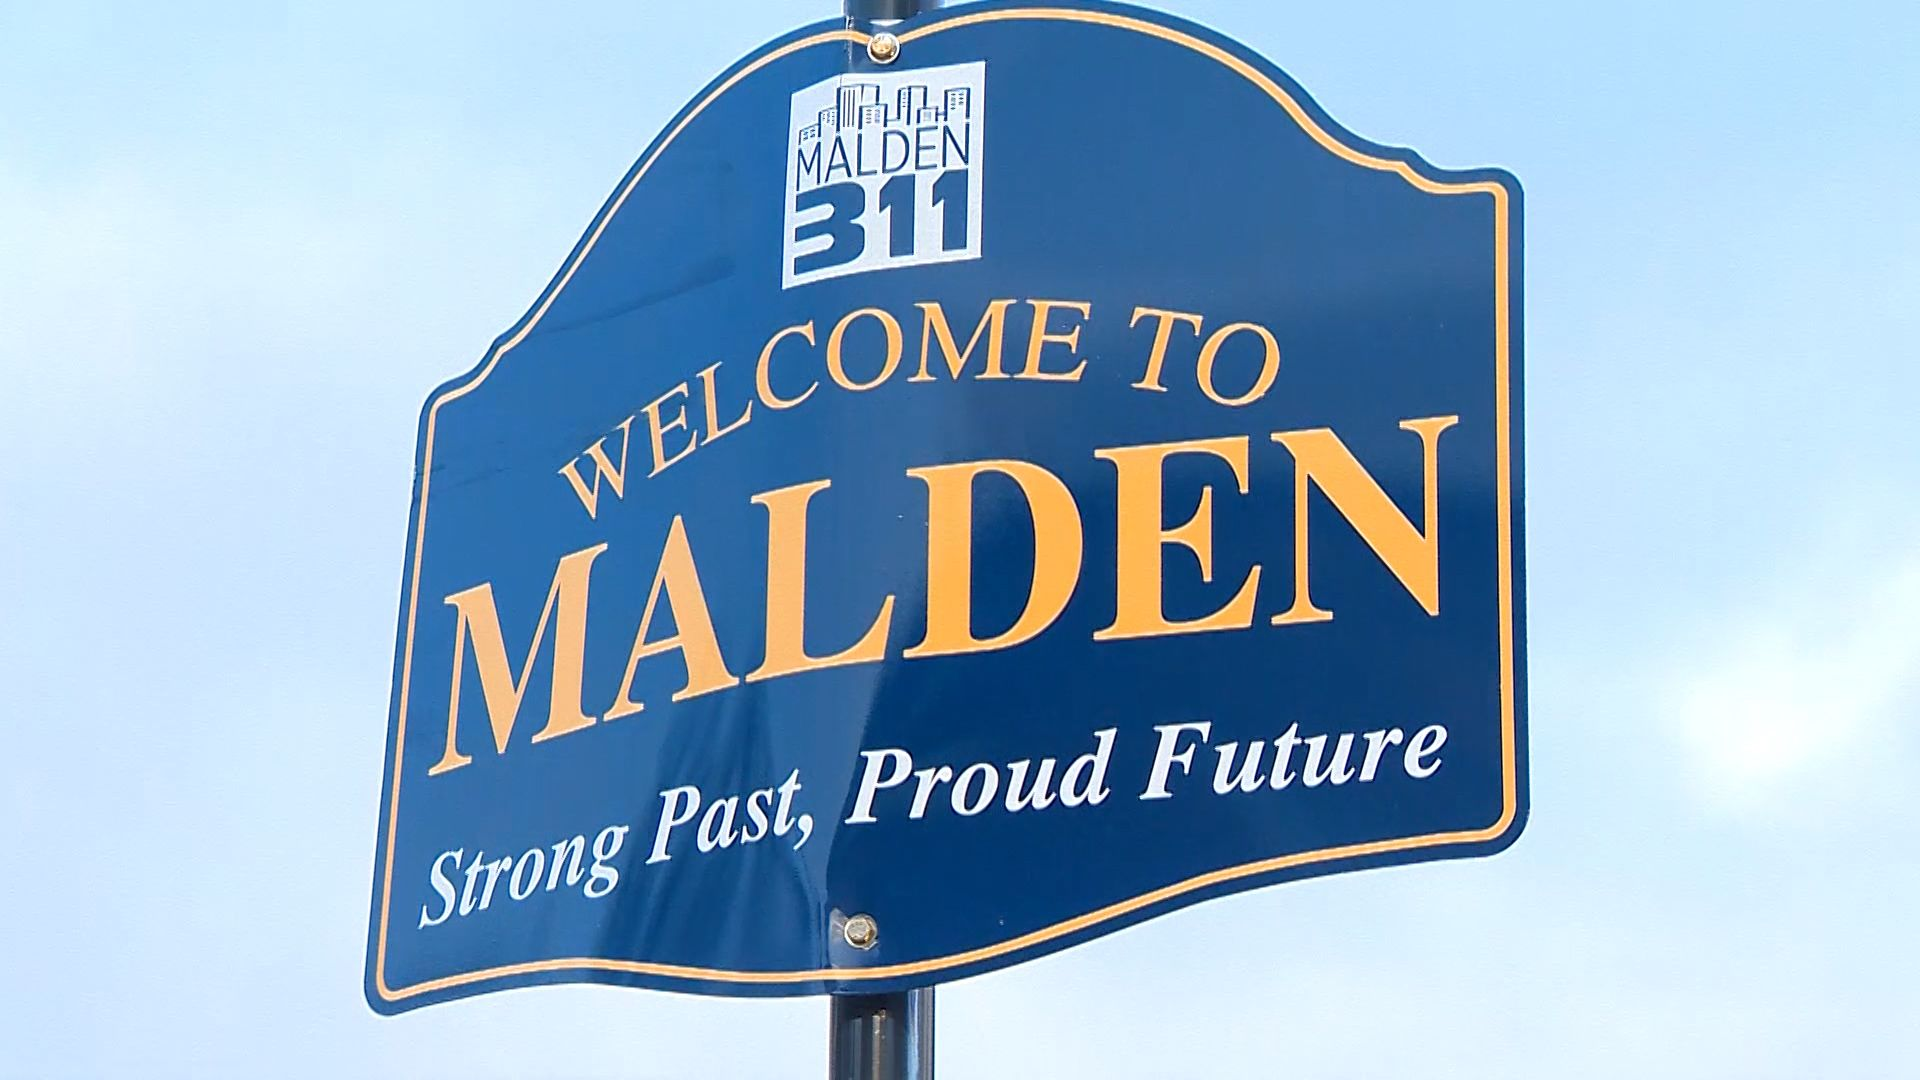 City of Malden planning memorial for victims of COVID-19 pandemic